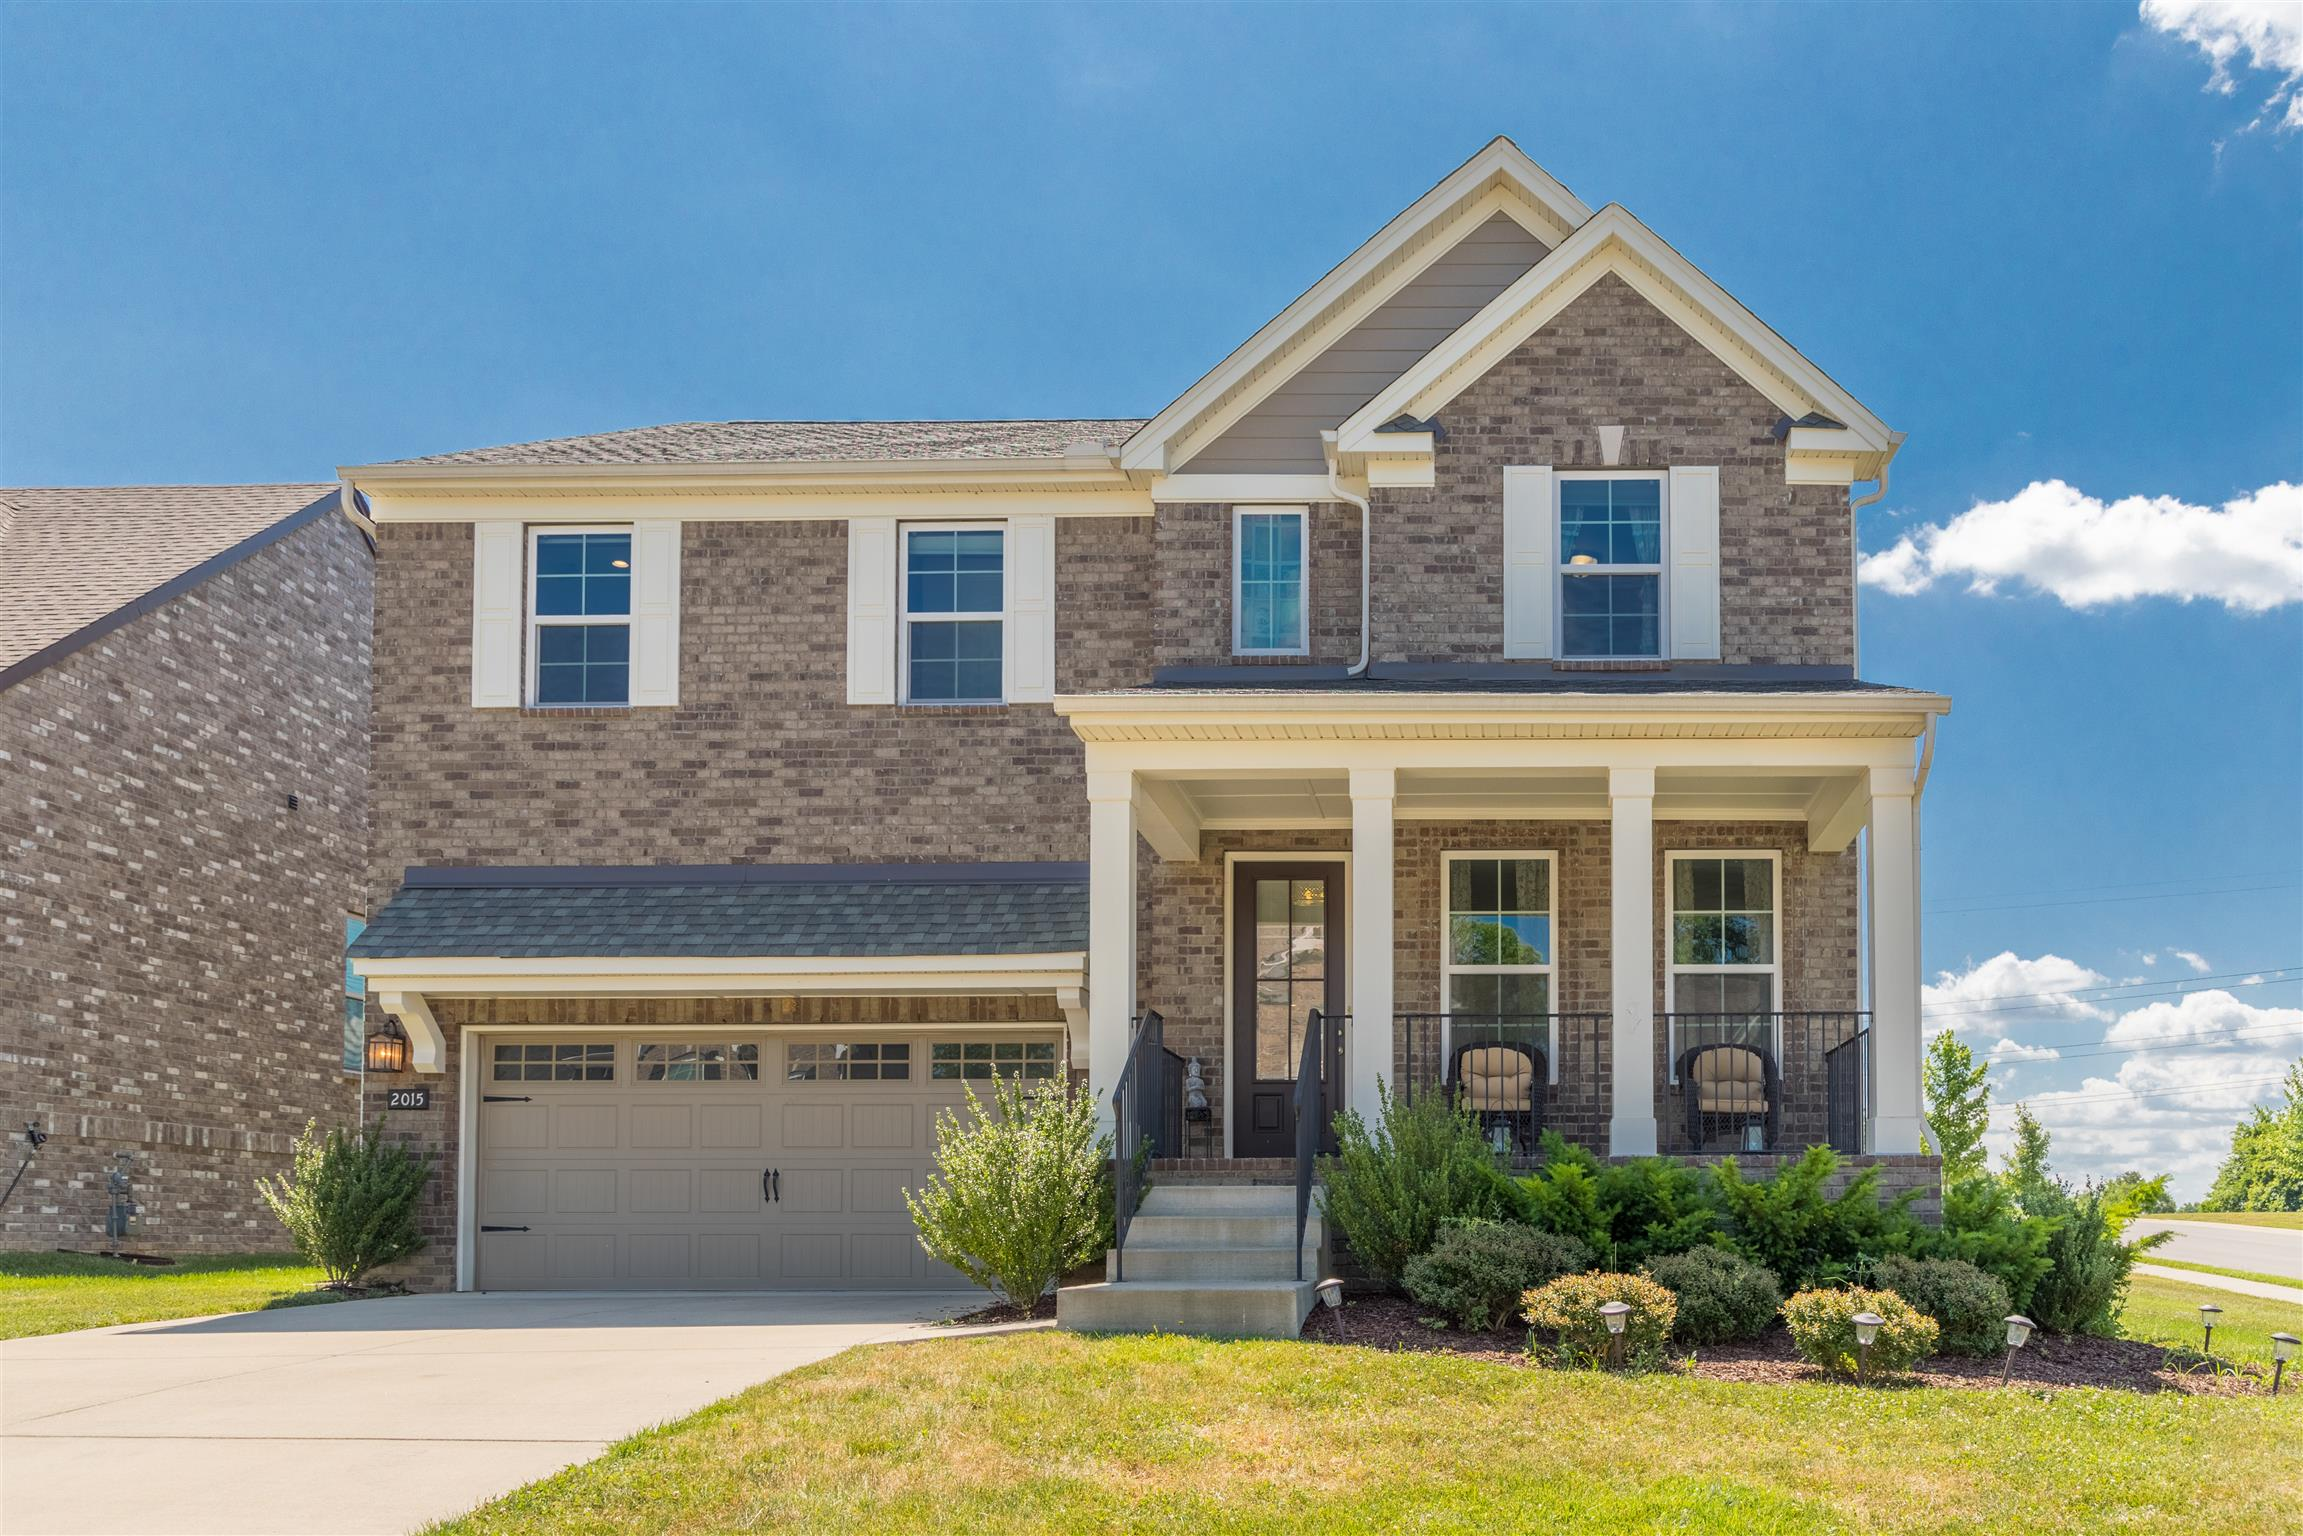 2015 Oliver Dr 37122 - One of Mount Juliet Homes for Sale